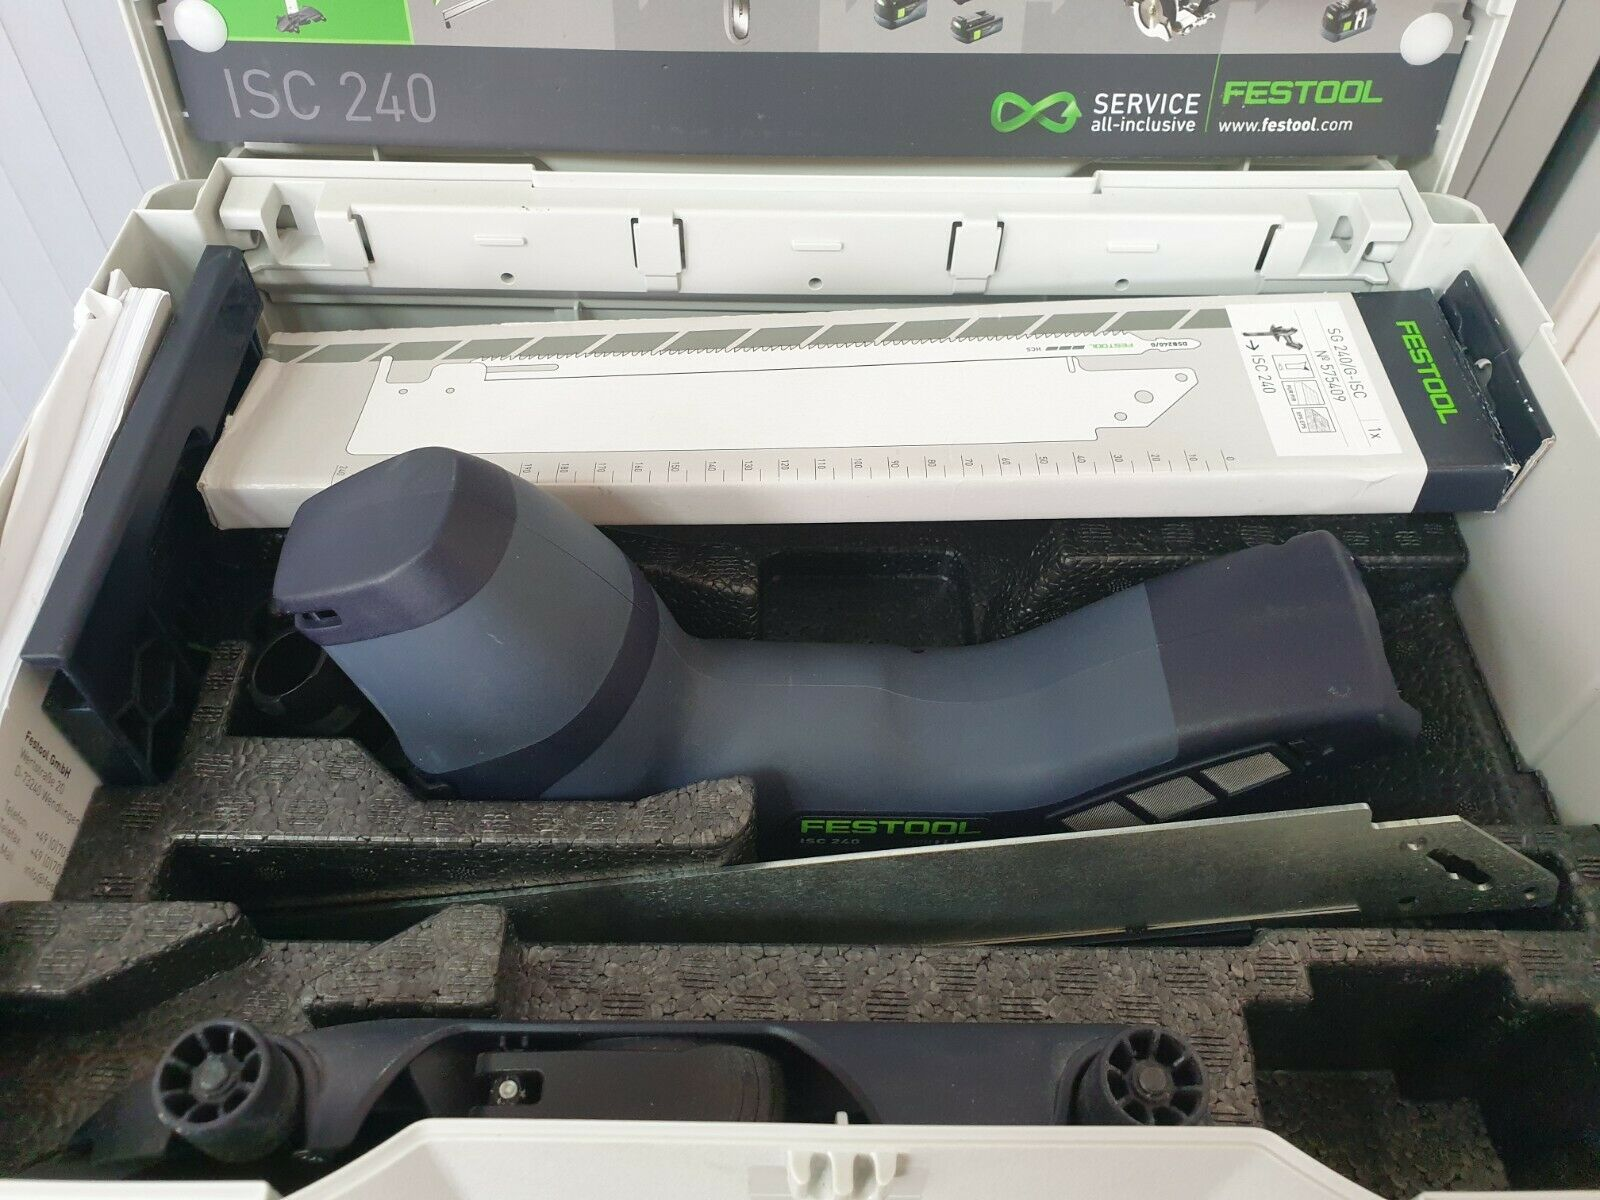 Festool Cordless Saw Isc 240 Li Eb Basic 574821 39900 Picclick Uk Disc Grinder 115 Mm Hitachi G 18dl 1 Of 1only 2 Available